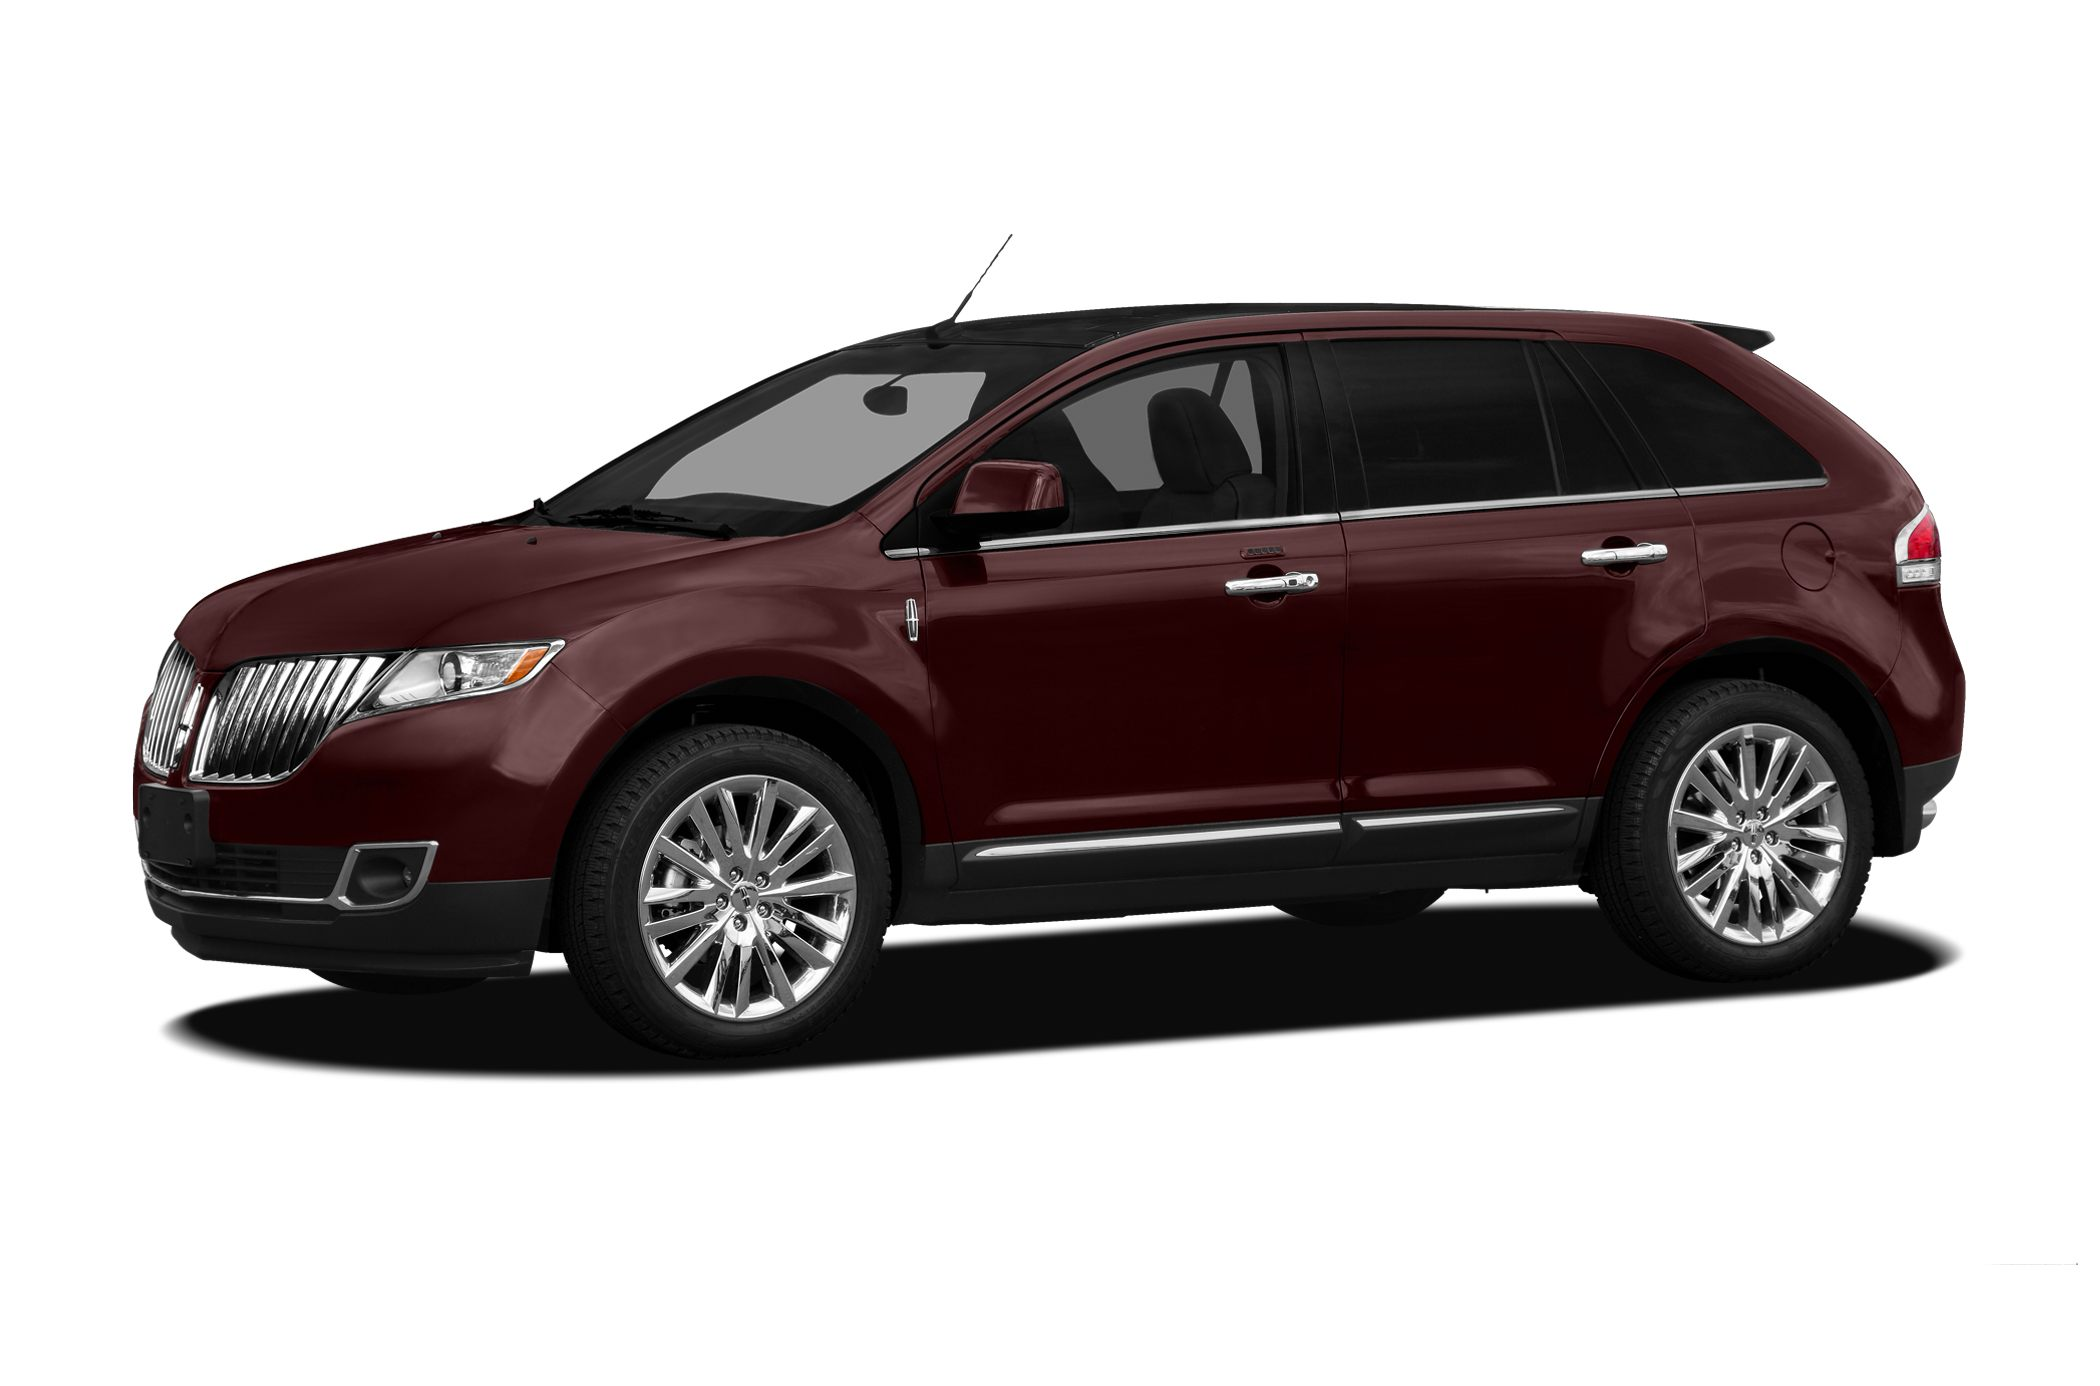 2011 Lincoln MKX Base SUV for sale in Nashville for $22,925 with 73,741 miles